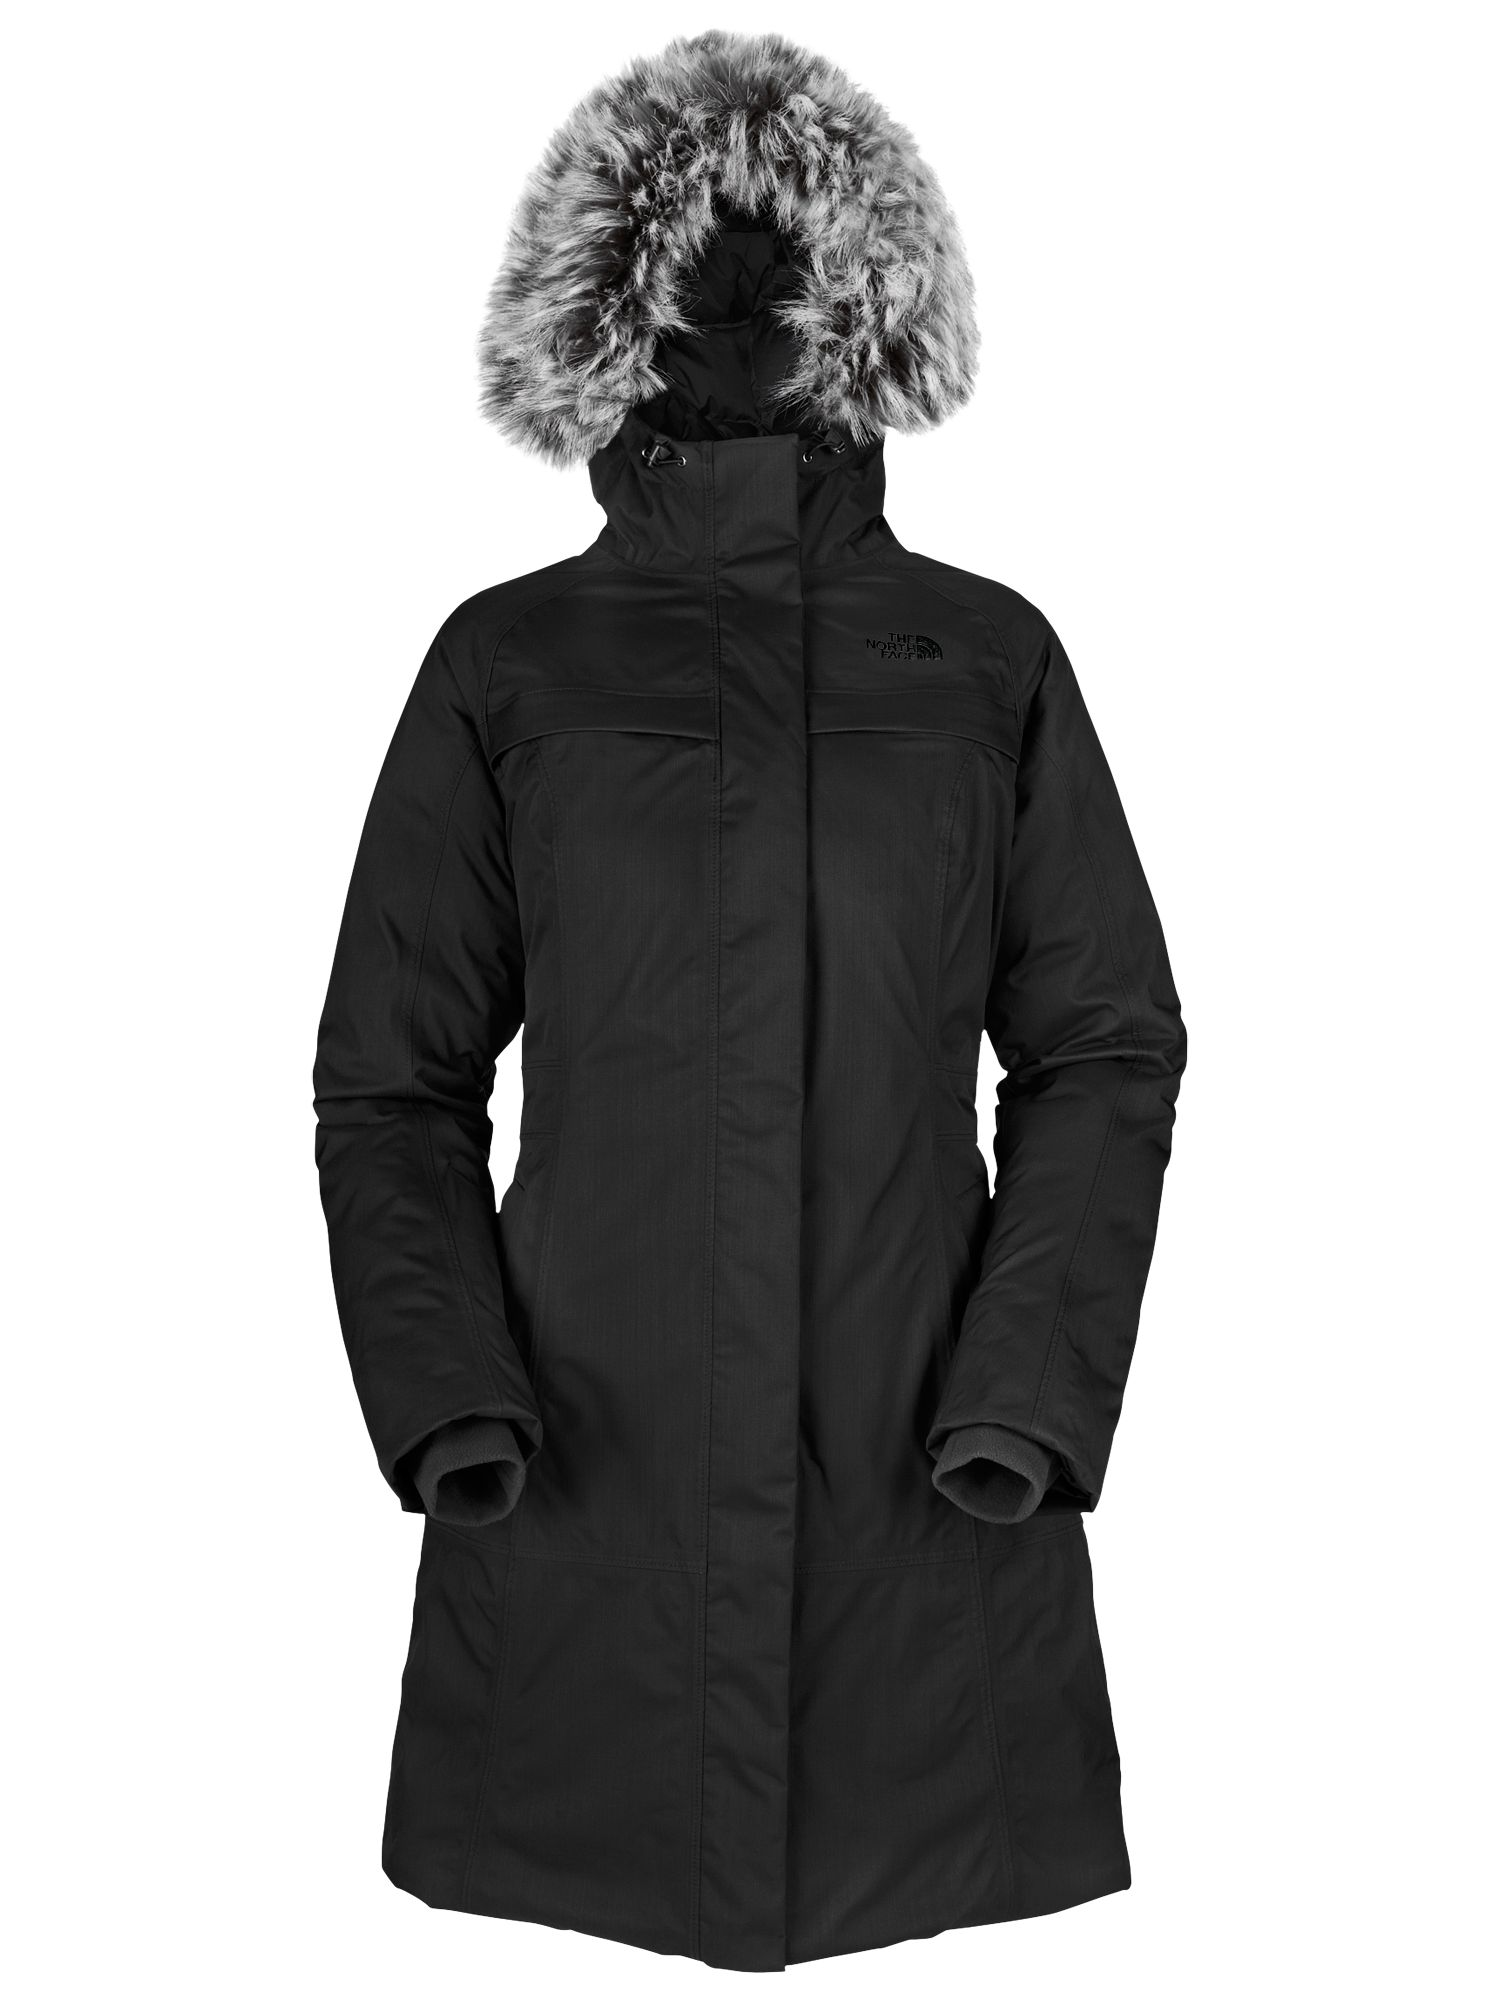 The North Face Arctic Parka, TNF Black